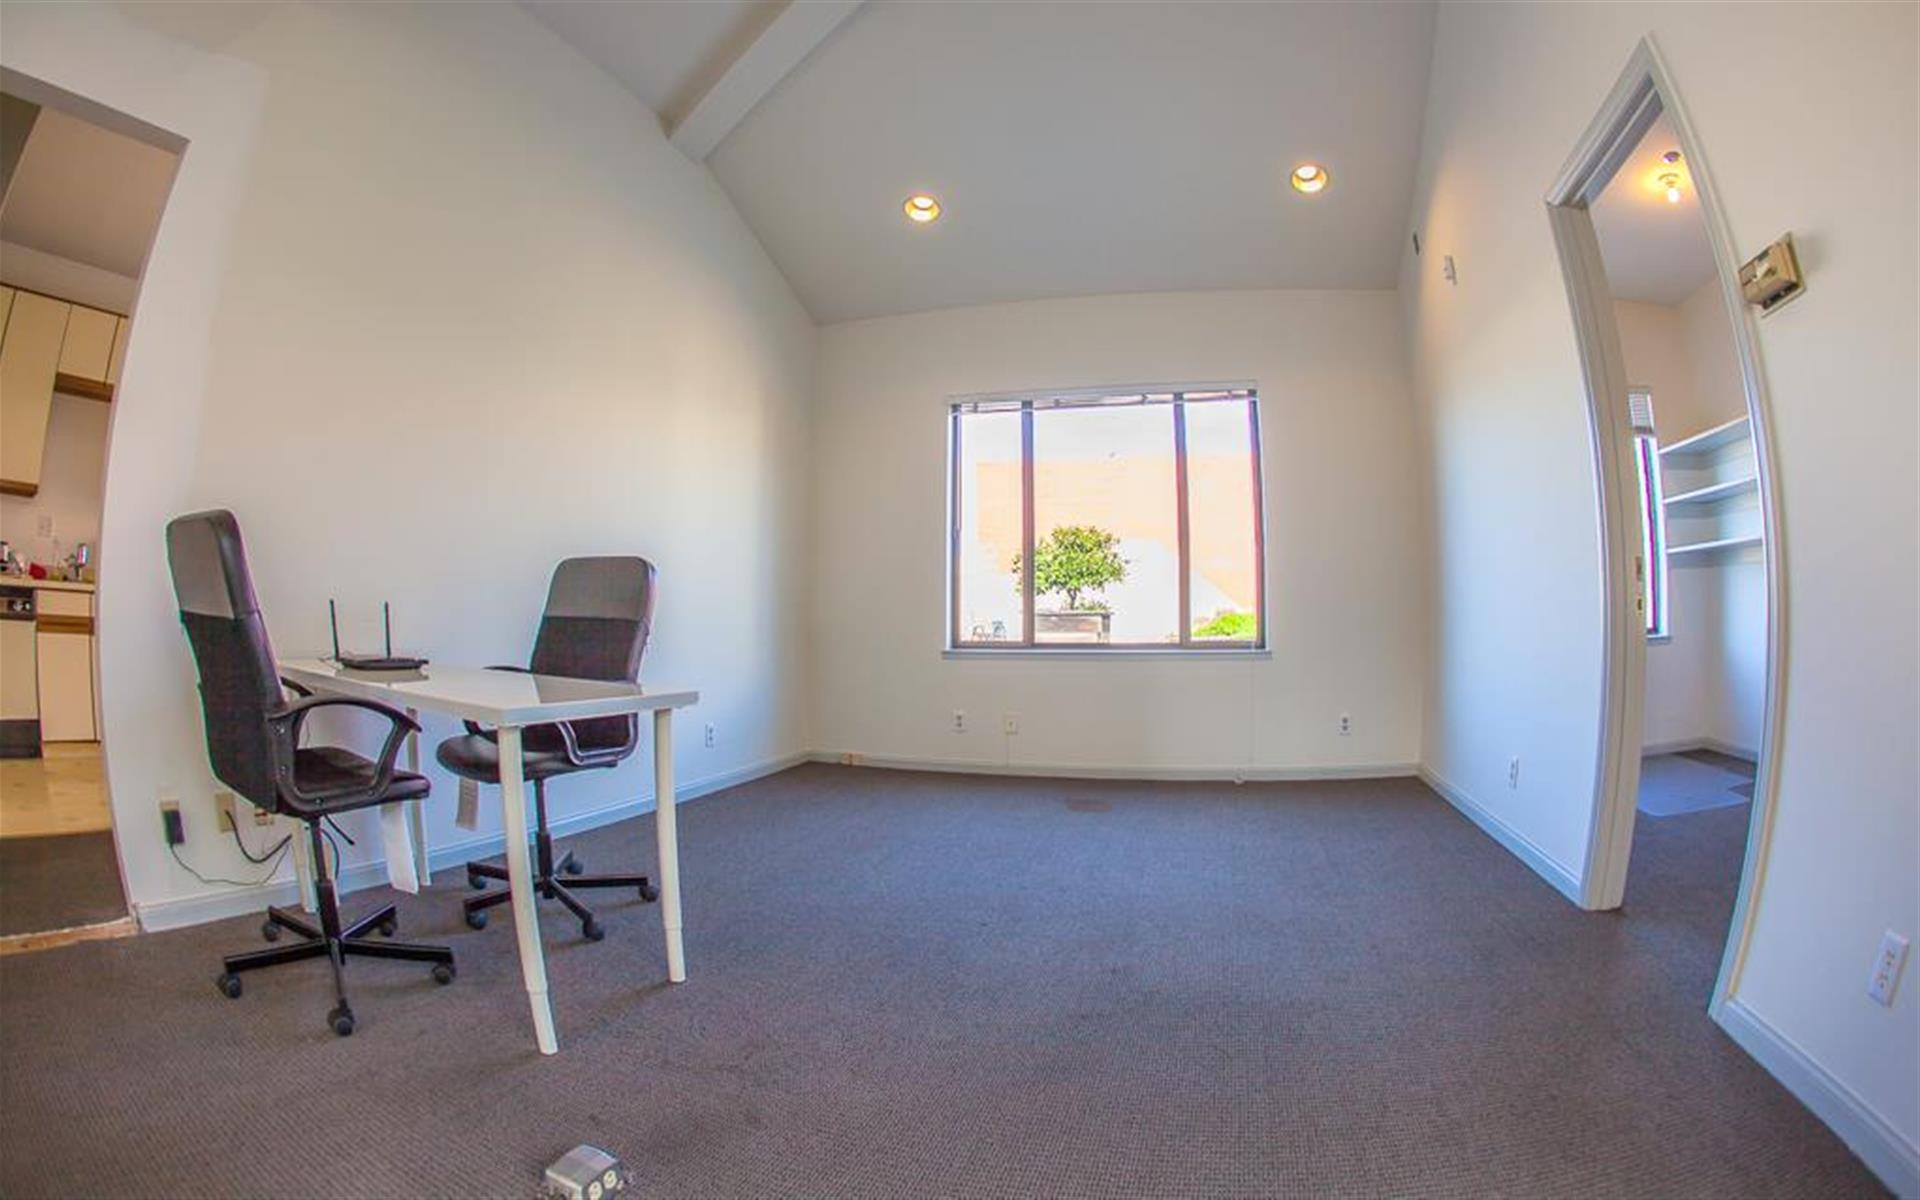 19th Street Suites - Droids - Open Desk